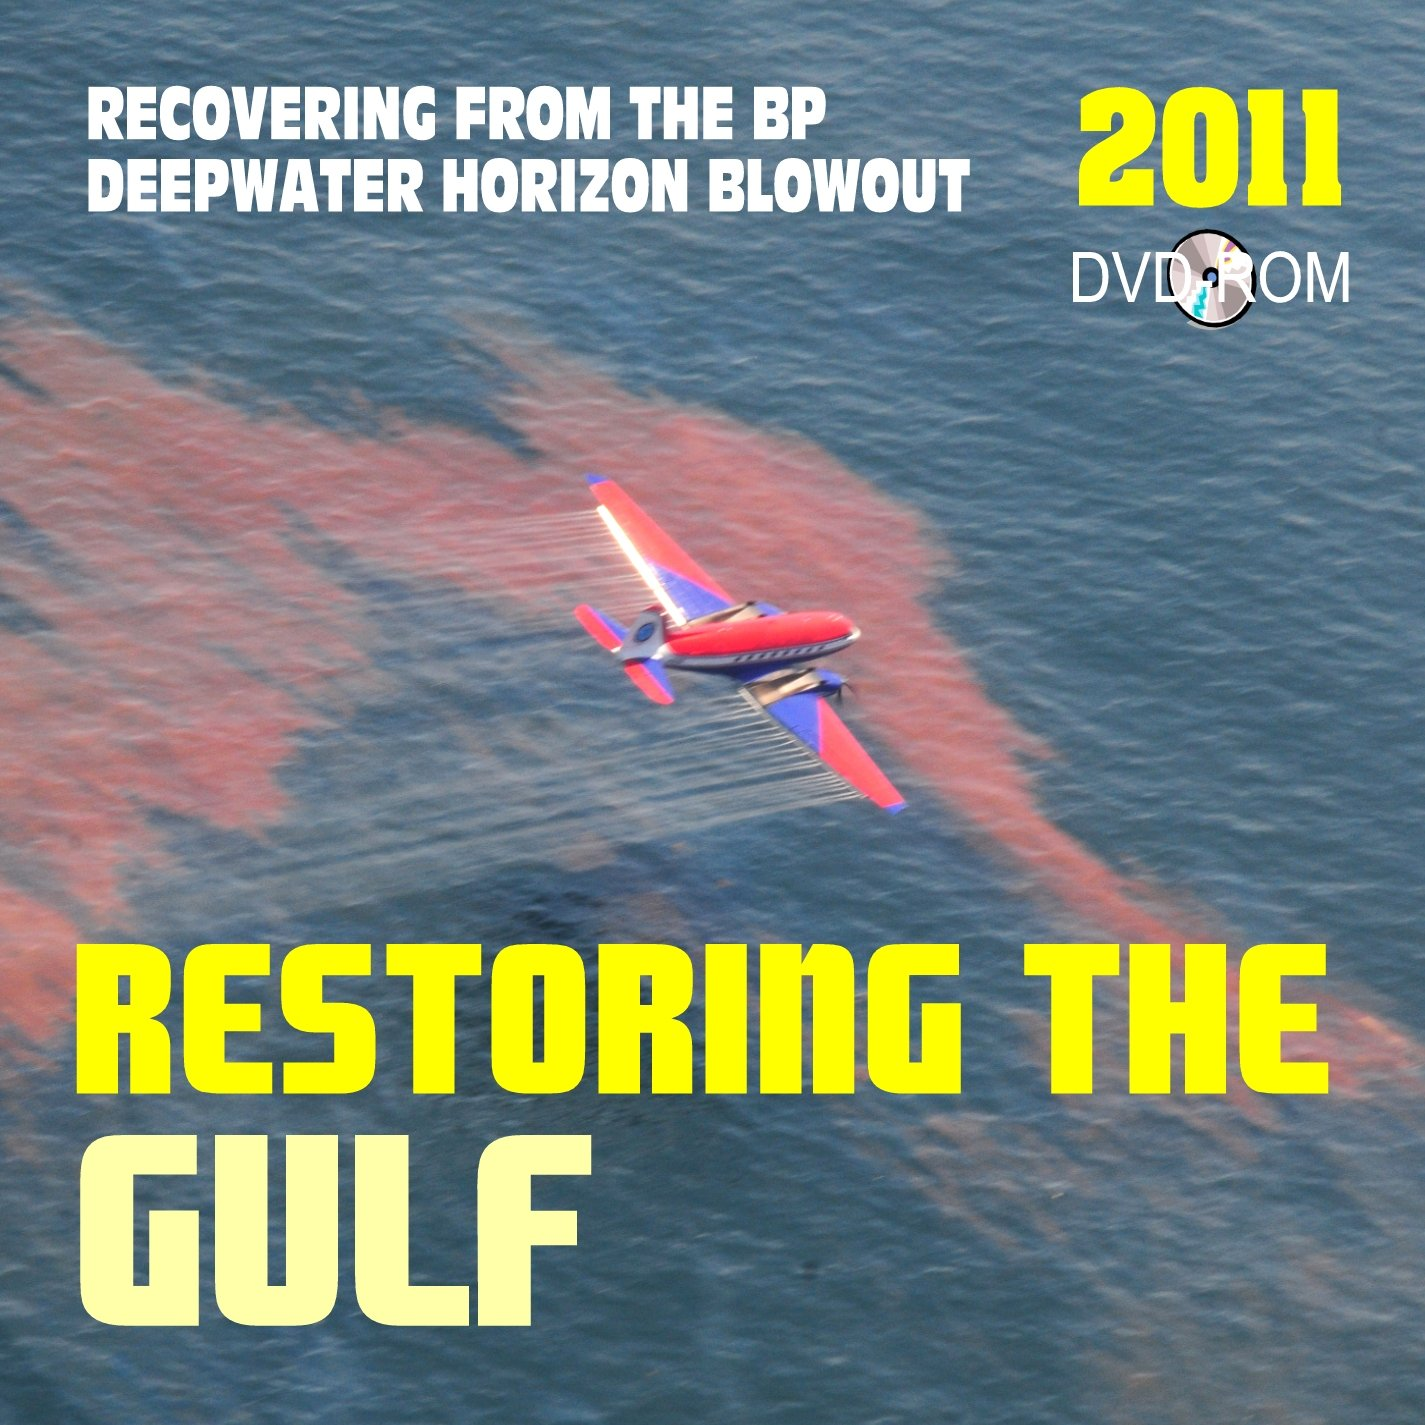 Read Online 2011 Restoring the Gulf: Recovering from the BP Deepwater Horizon Gulf of Mexico Oil Spill, the Macondo Well Blowout - Plus Commission on the Spill and Offshore Drilling Report (DVD-ROM) ebook